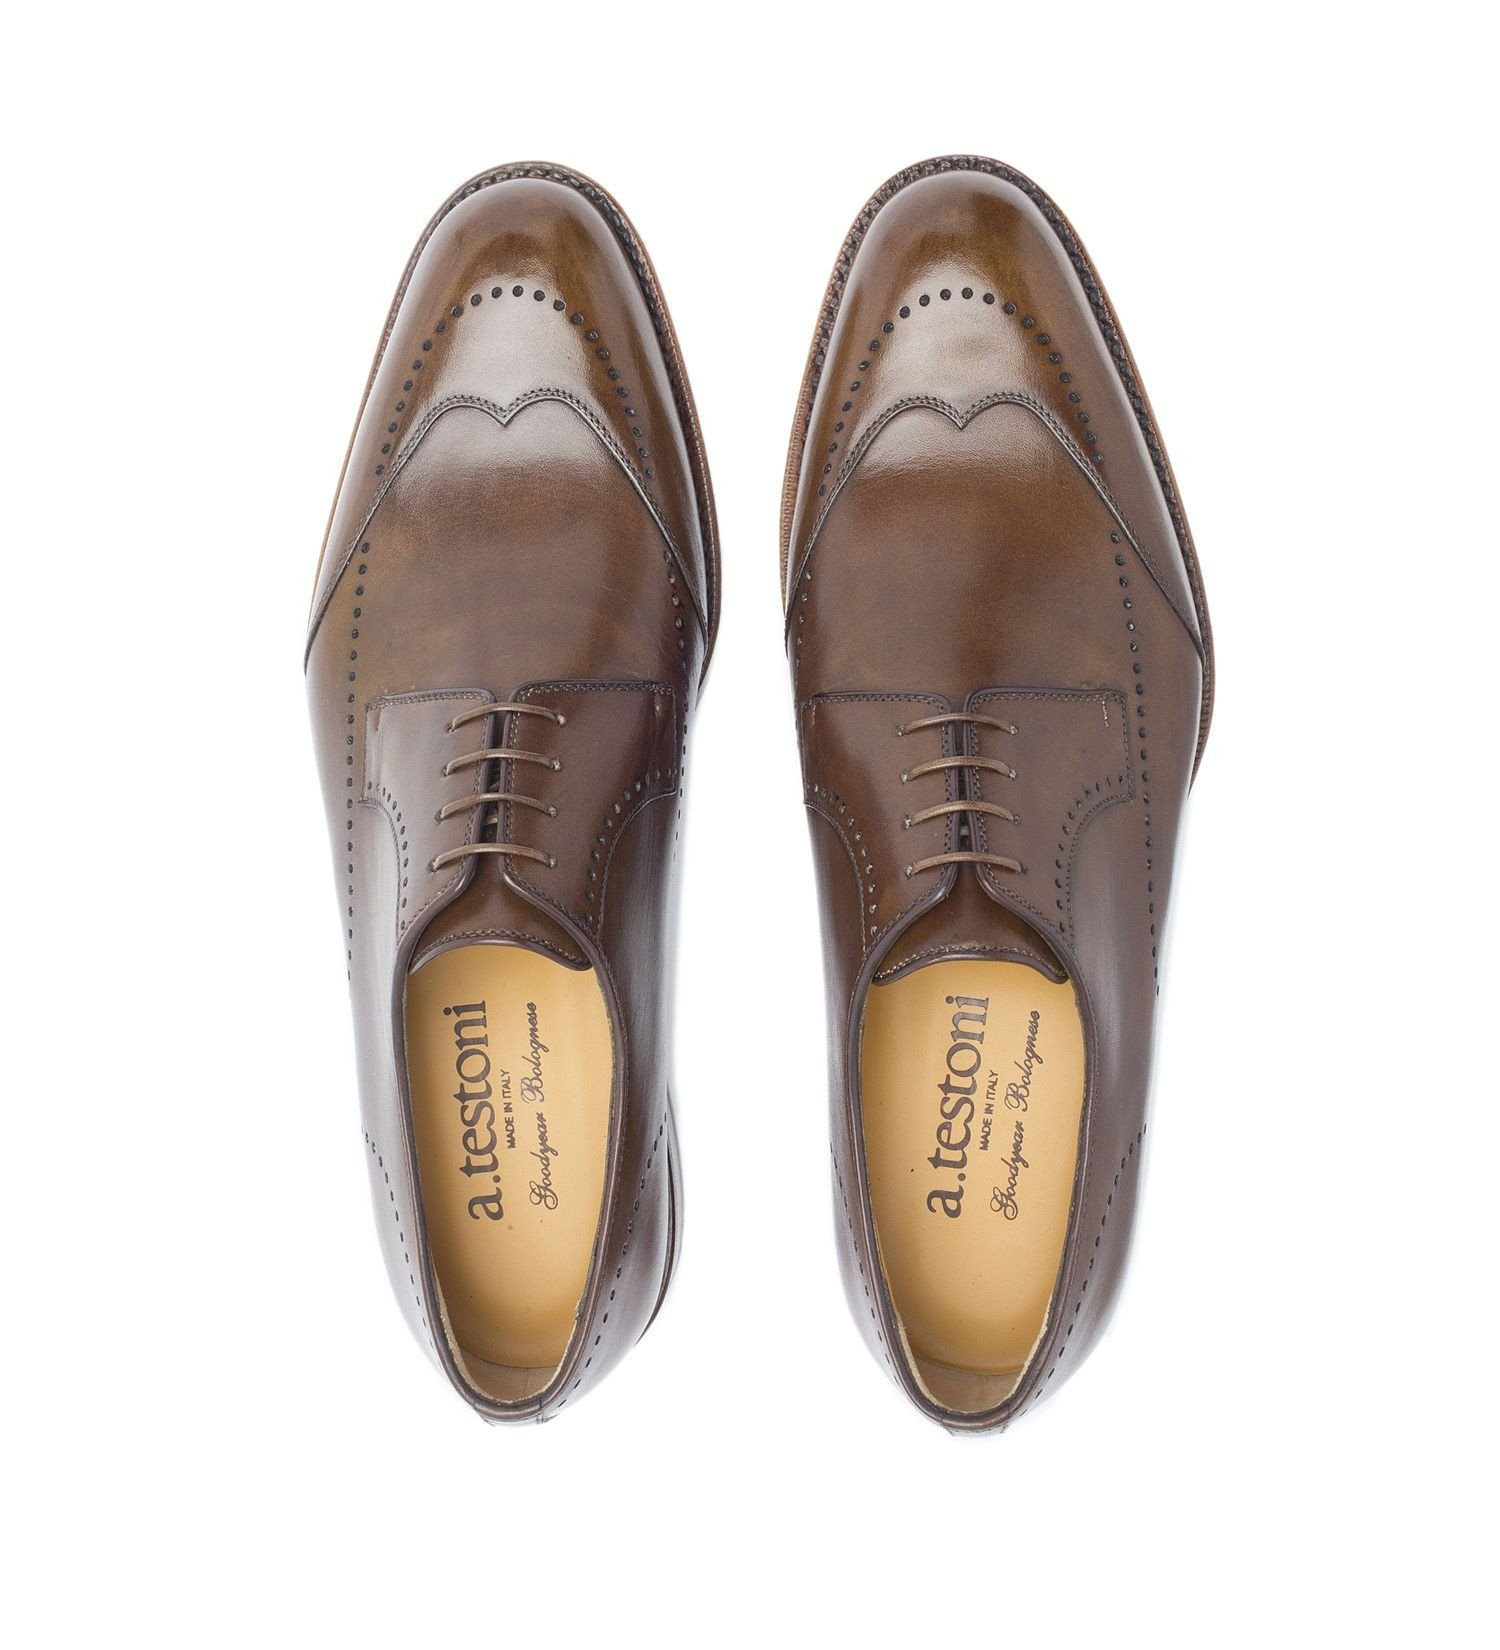 EXTRA-FLEXIBLE LACE-UP IN LEATHER,SHOES,A.TESTONI, | GentRow.com